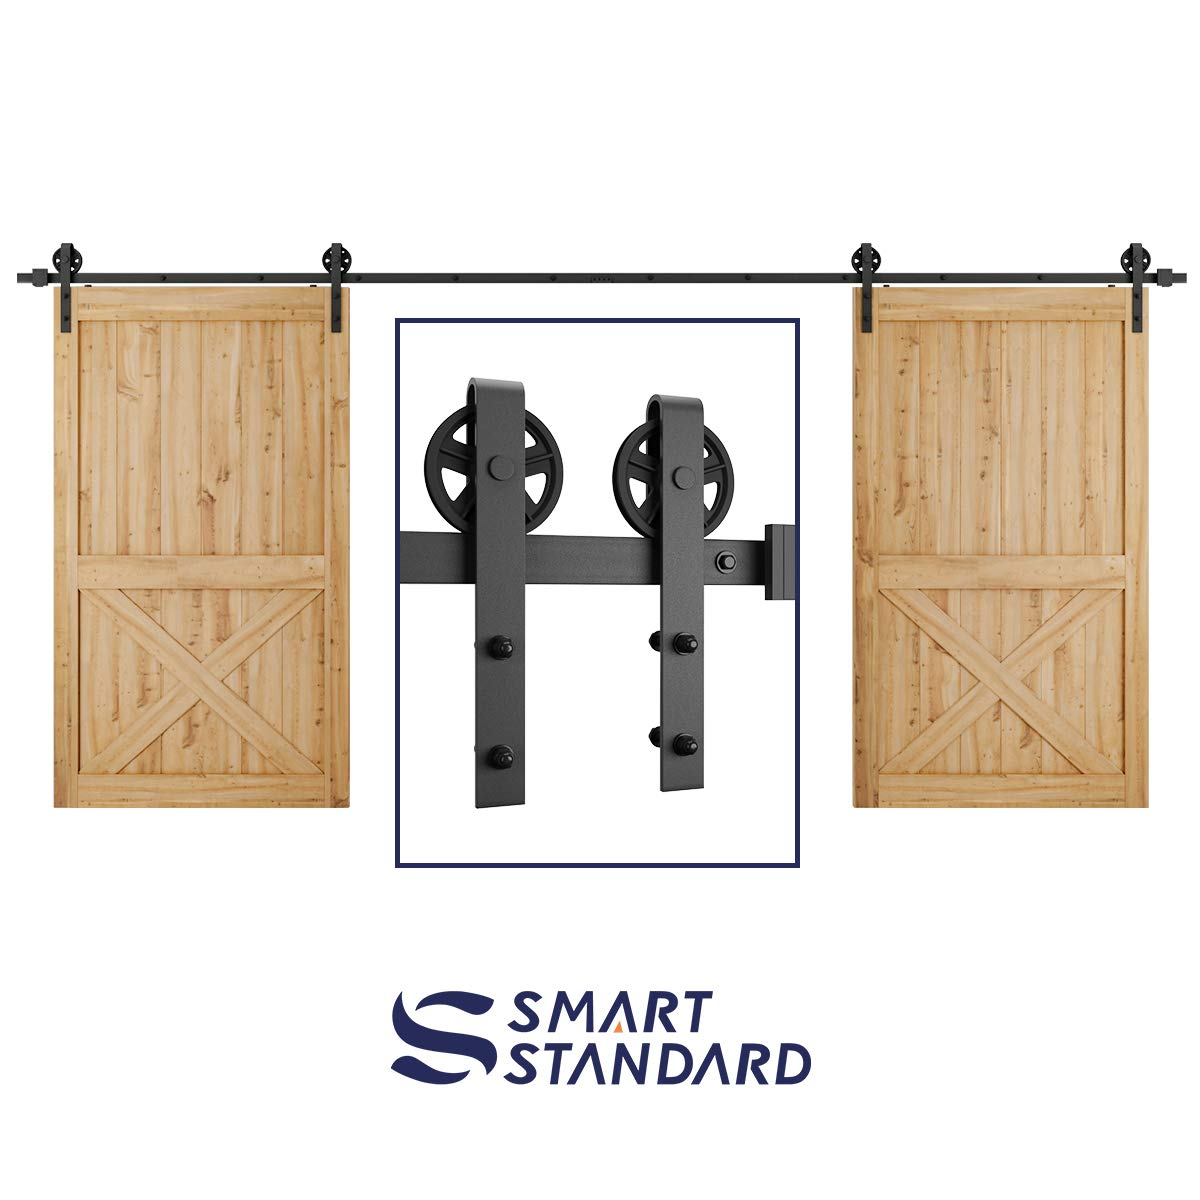 16ft Double Door Sliding Barn Door Hardware Kit - Smoothly and Quietly - Easy to Install - Includes Step-by-Step Installation Instruction -Fit 42''-48'' Wide Door Panel(Big Industrial Wheel Hanger)